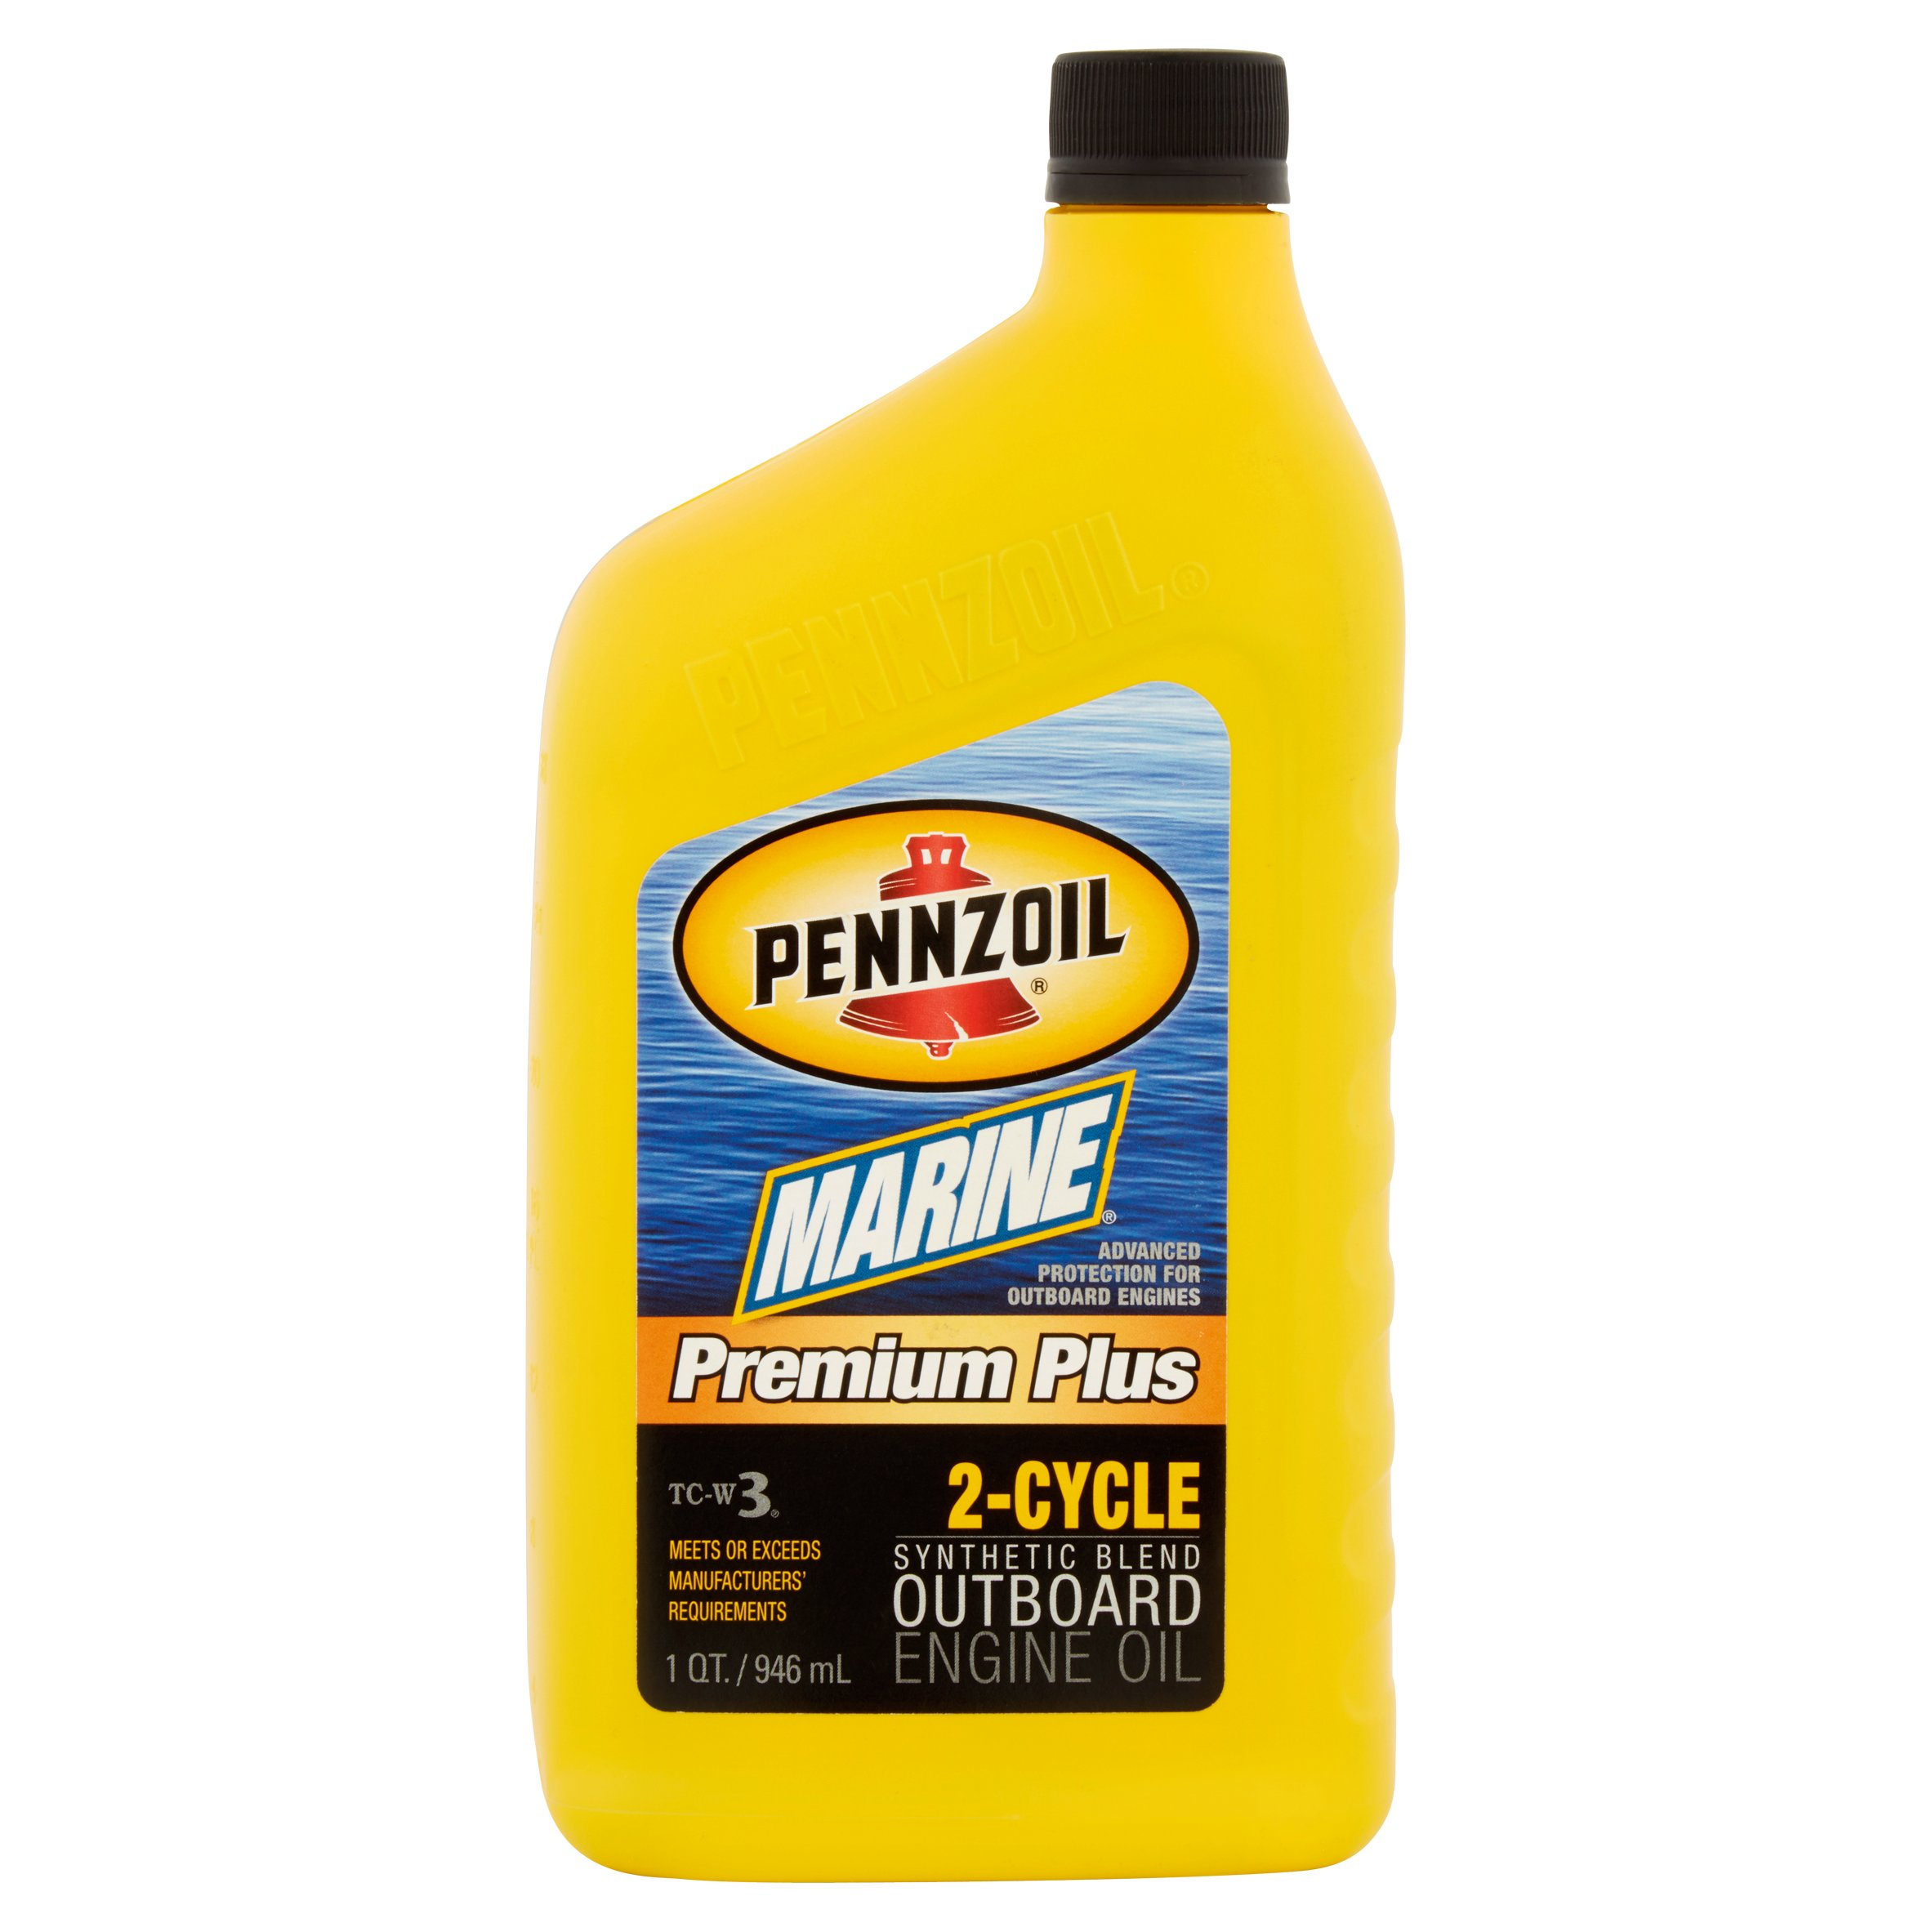 Pennzoil Marine TC-W3 Premium Plus OB 2-Cycle Motor Oil, 1-quart bottle